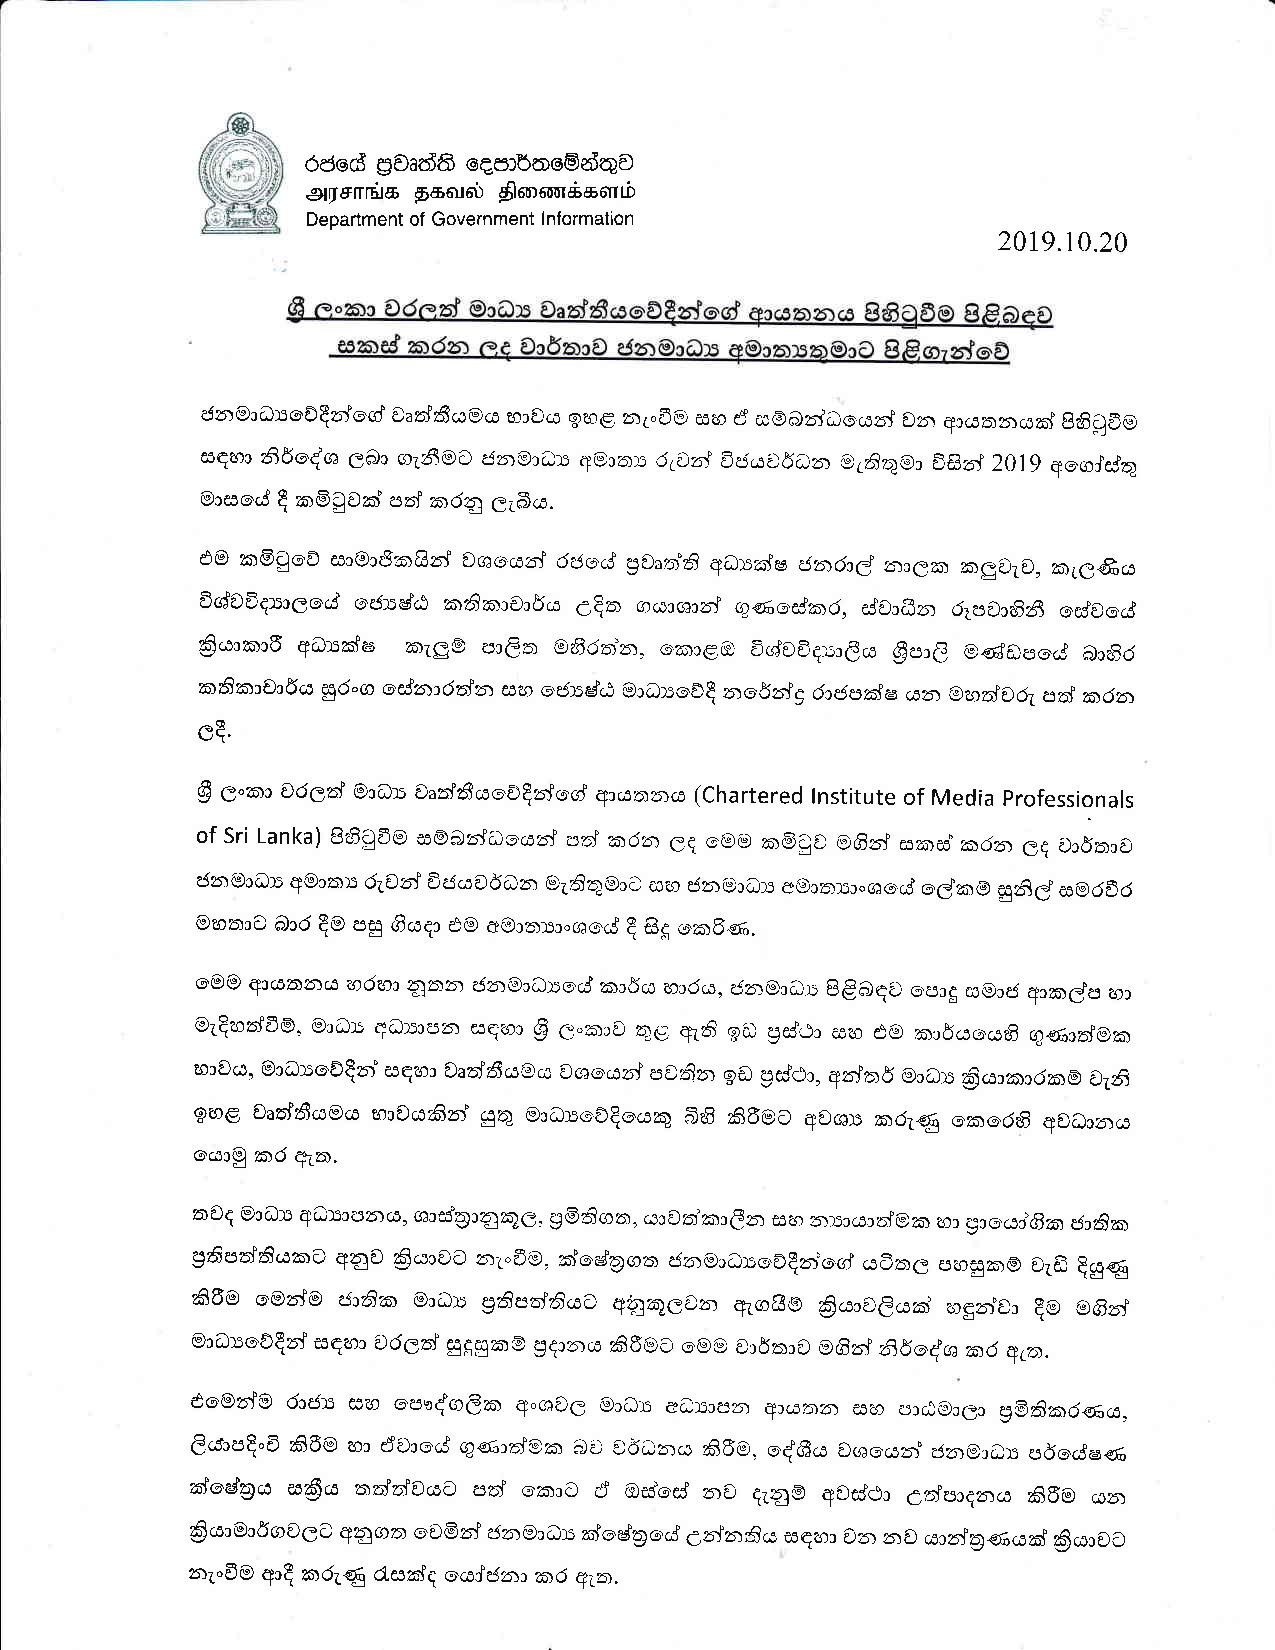 Media Release on 20.10.2019 page 001